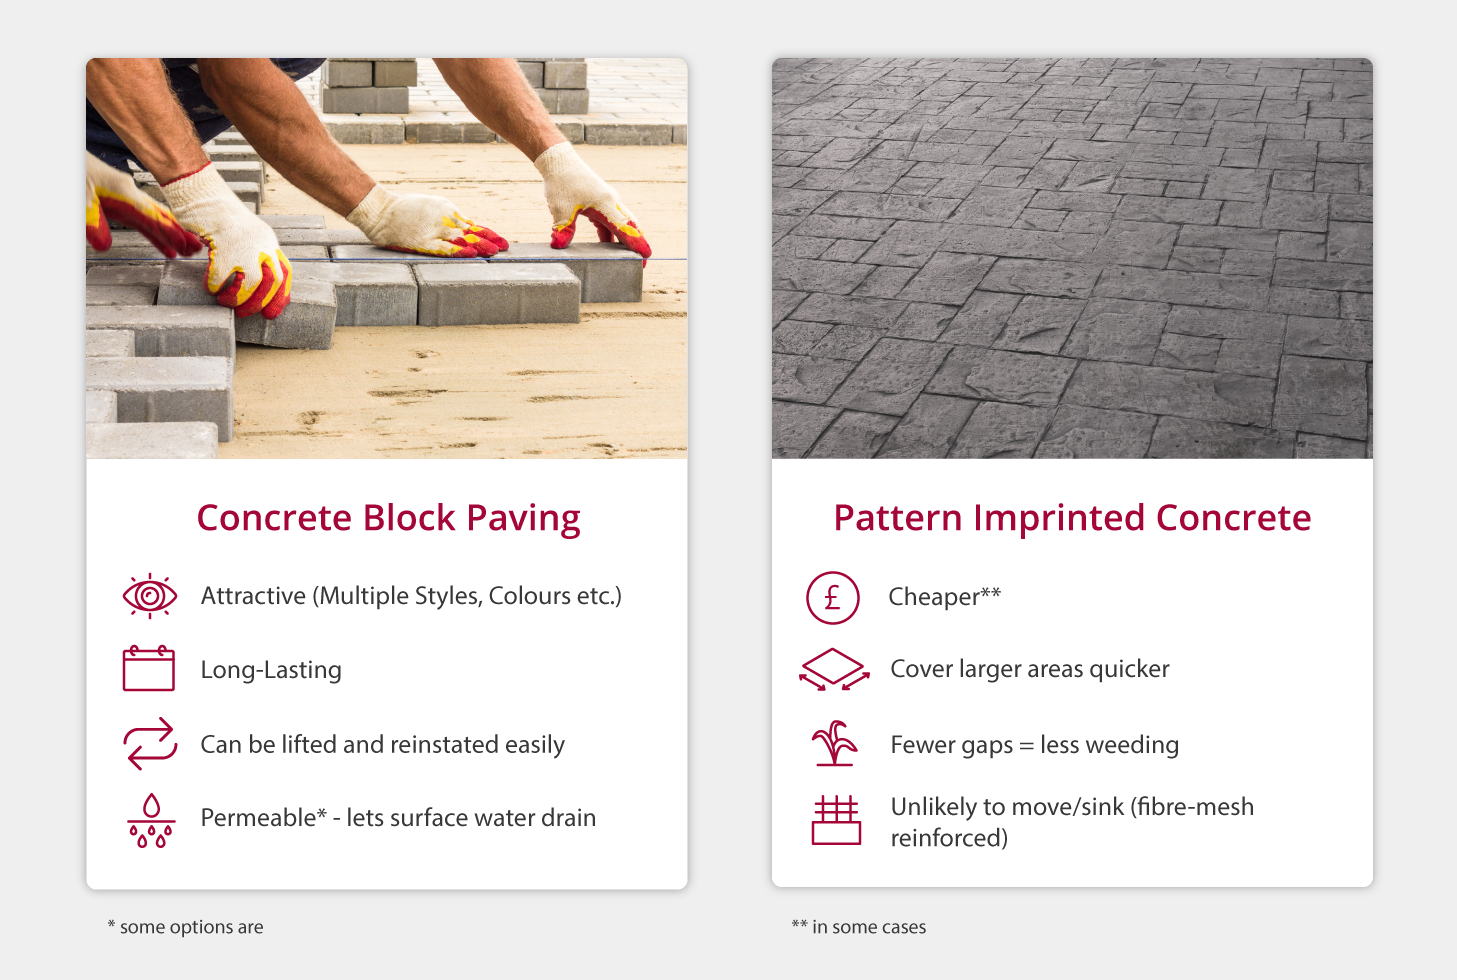 Artwork for concrete block paving and pattern imprinted concrete blog.